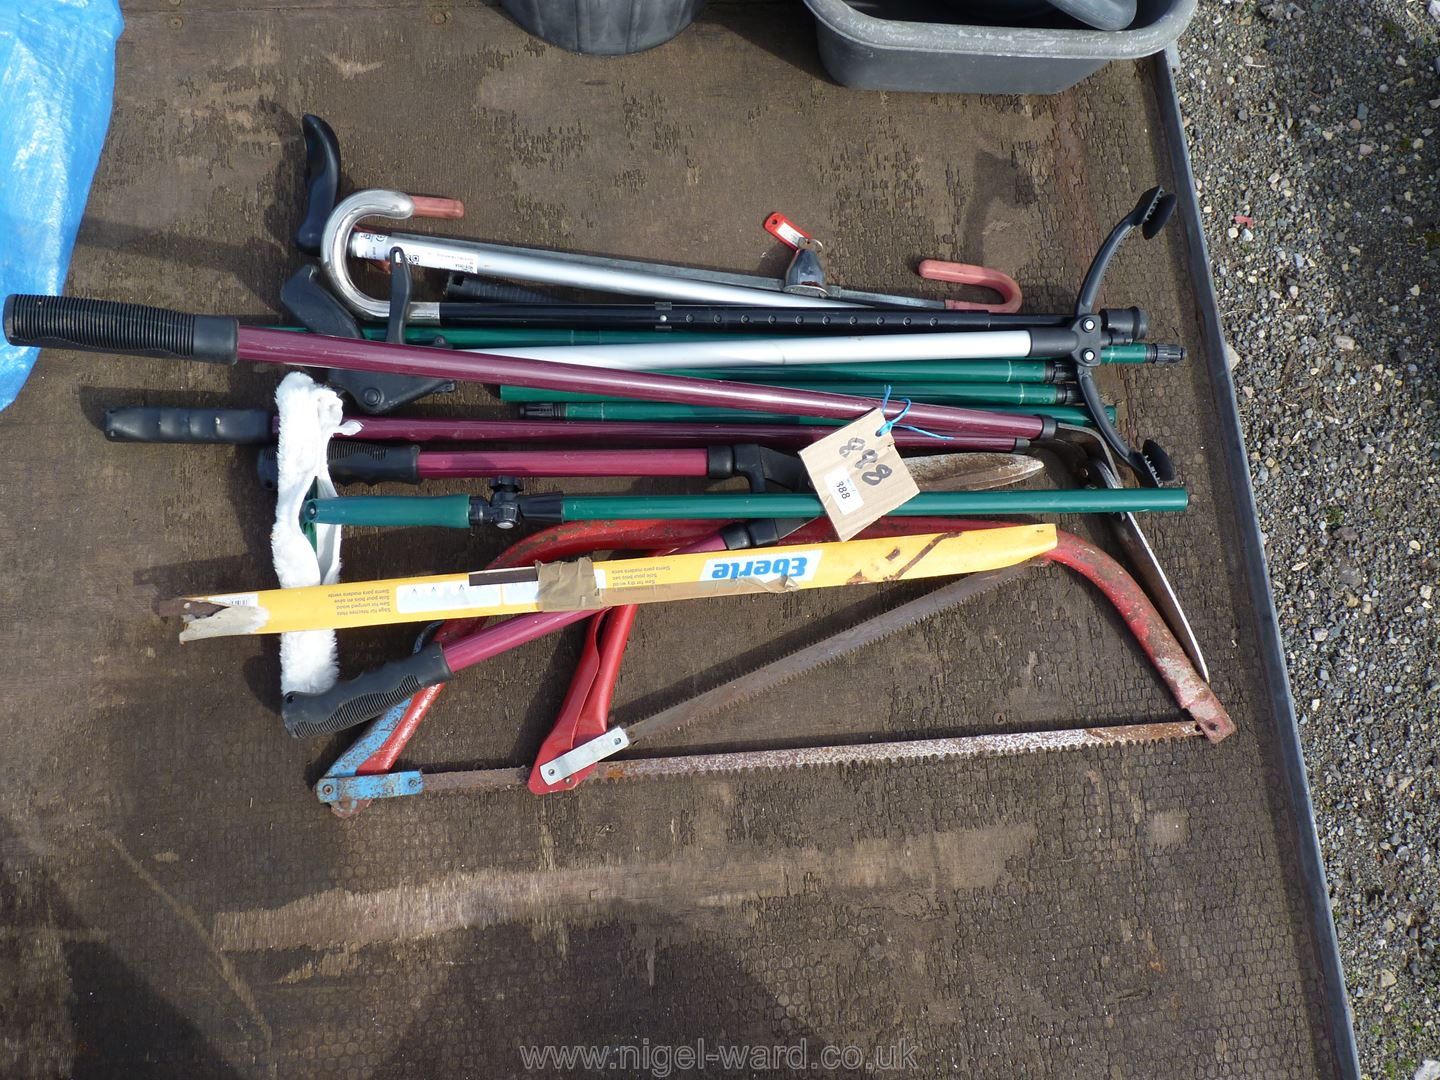 Quantity of bow saws, sticks, garden clippers, window washer,